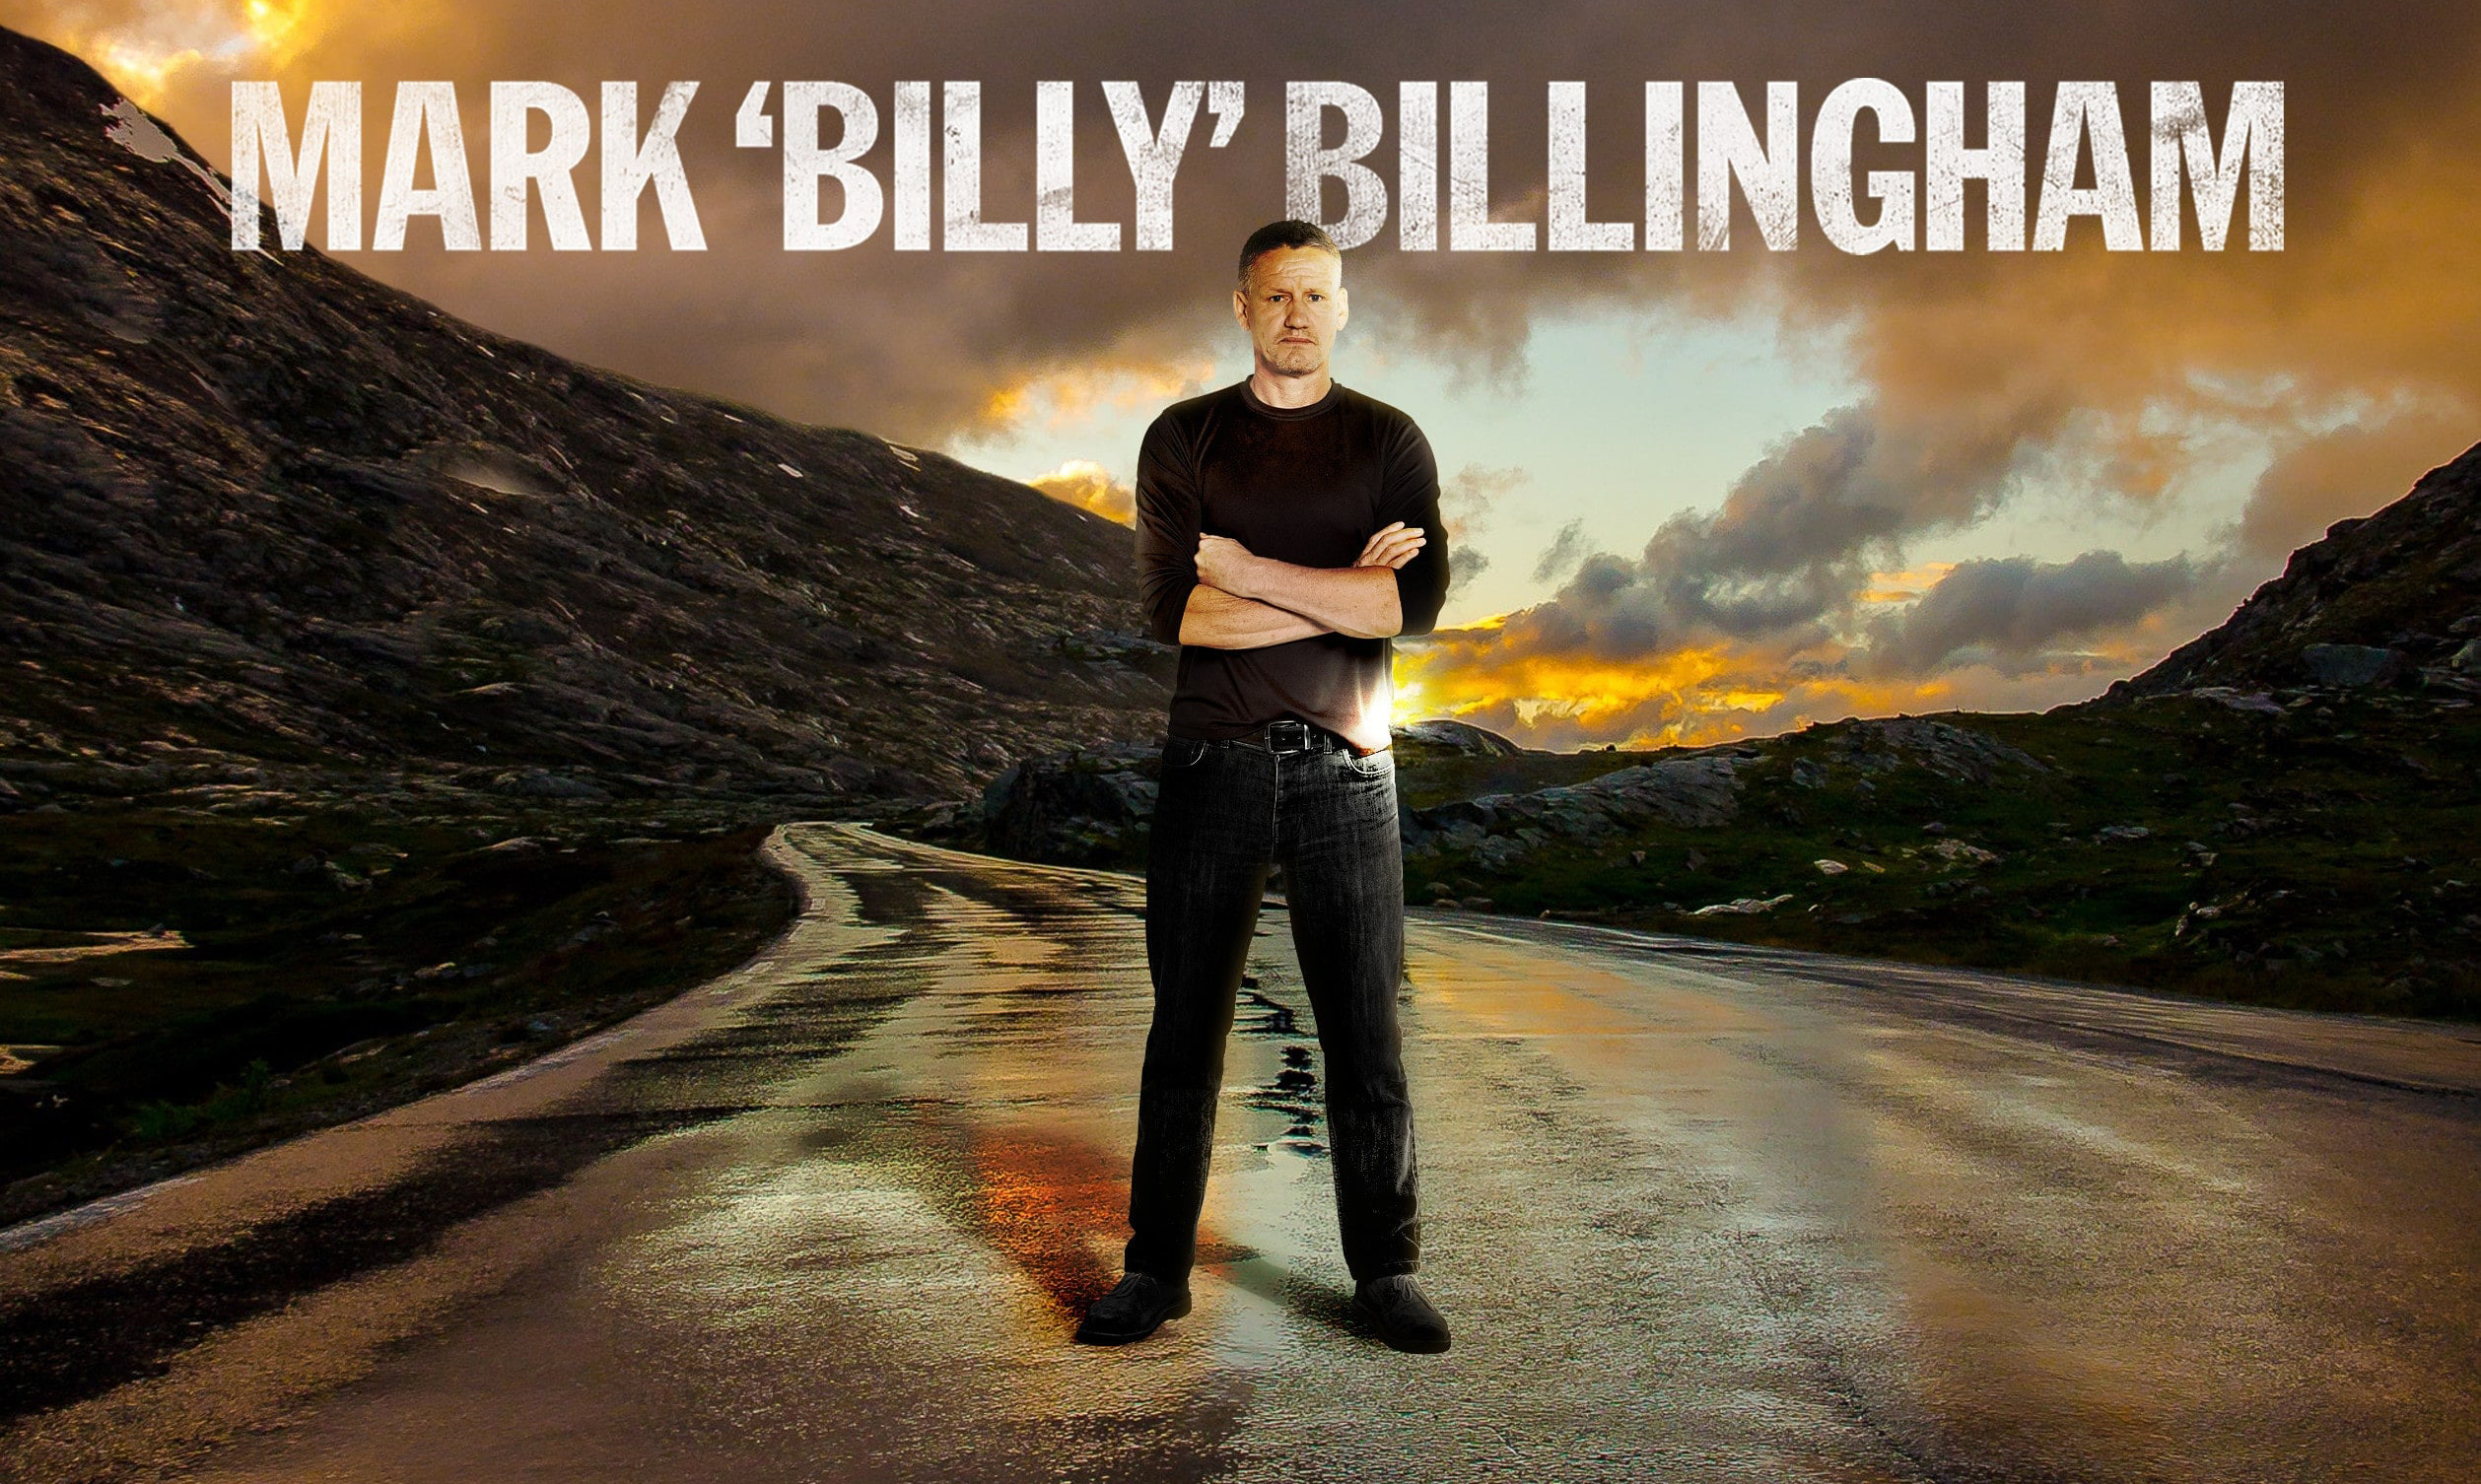 billy-background-new